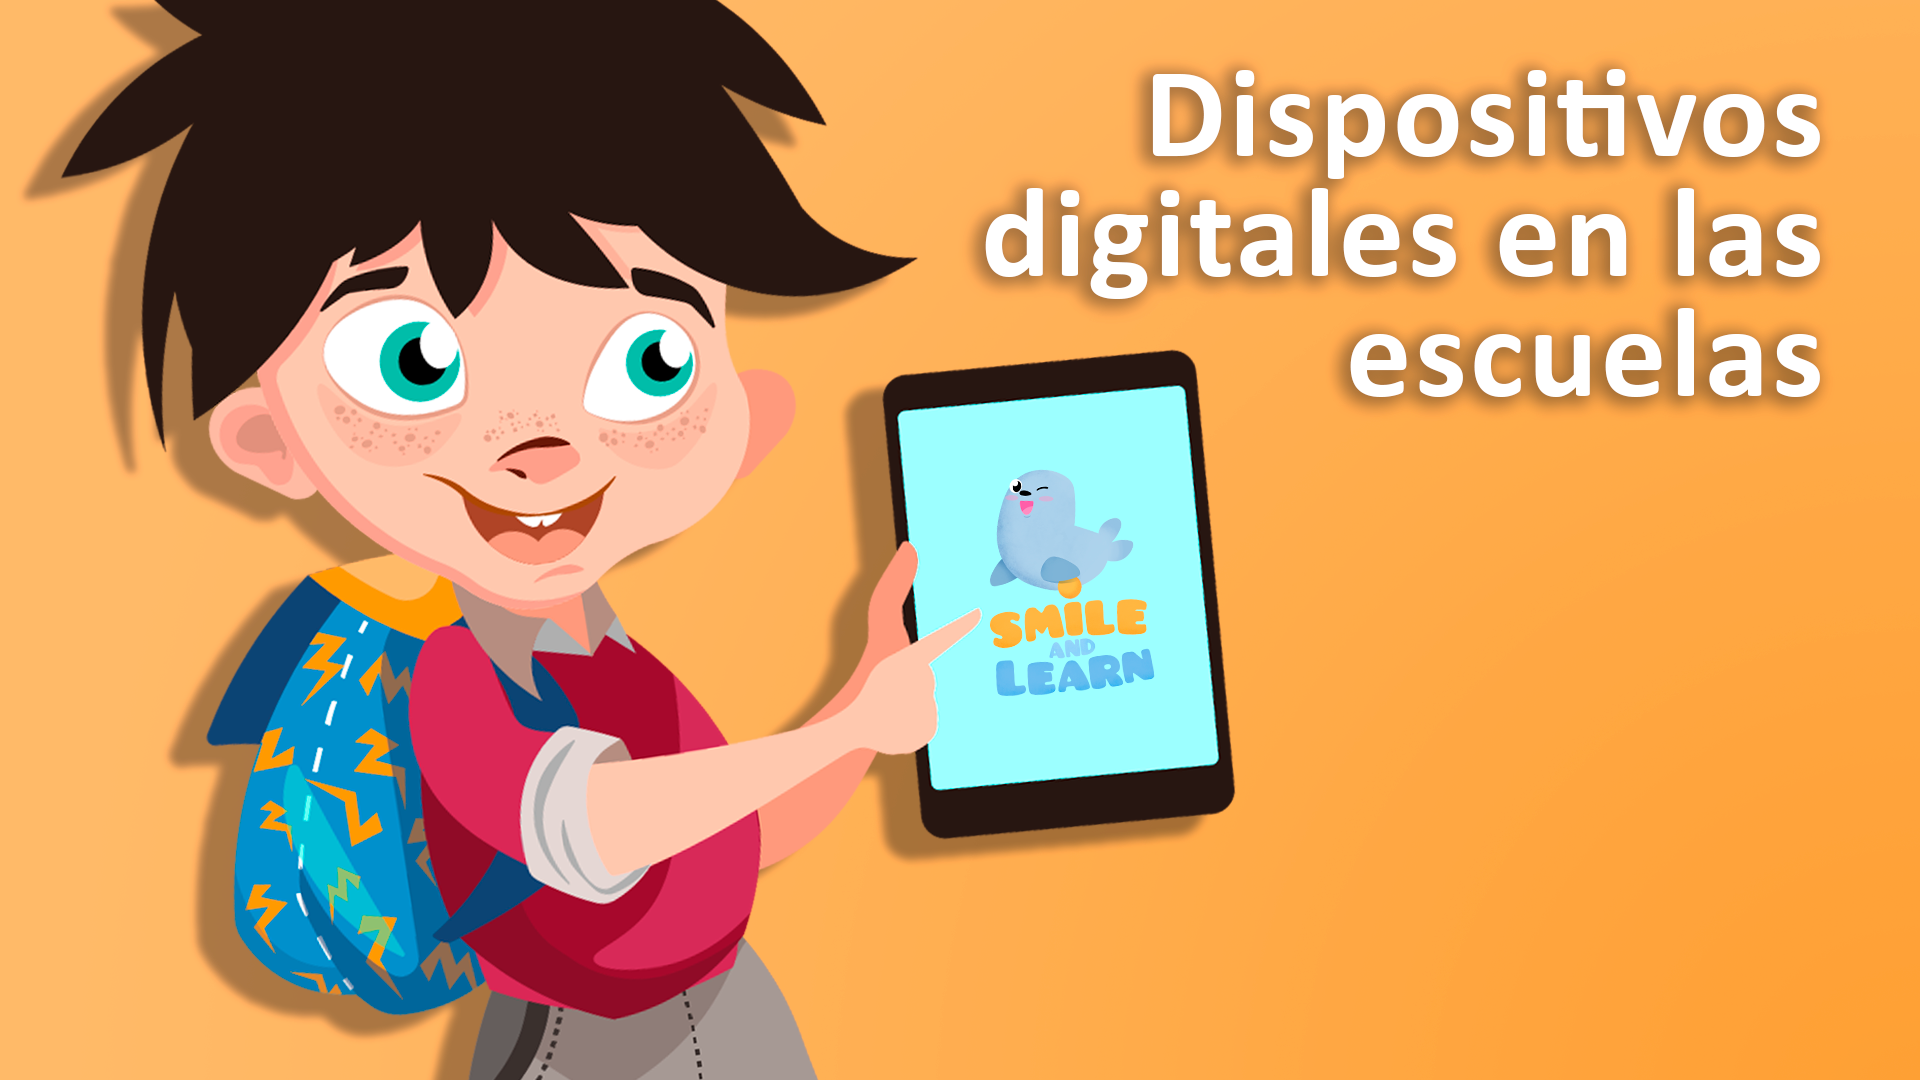 17.dispositivos_digitales_escuelas